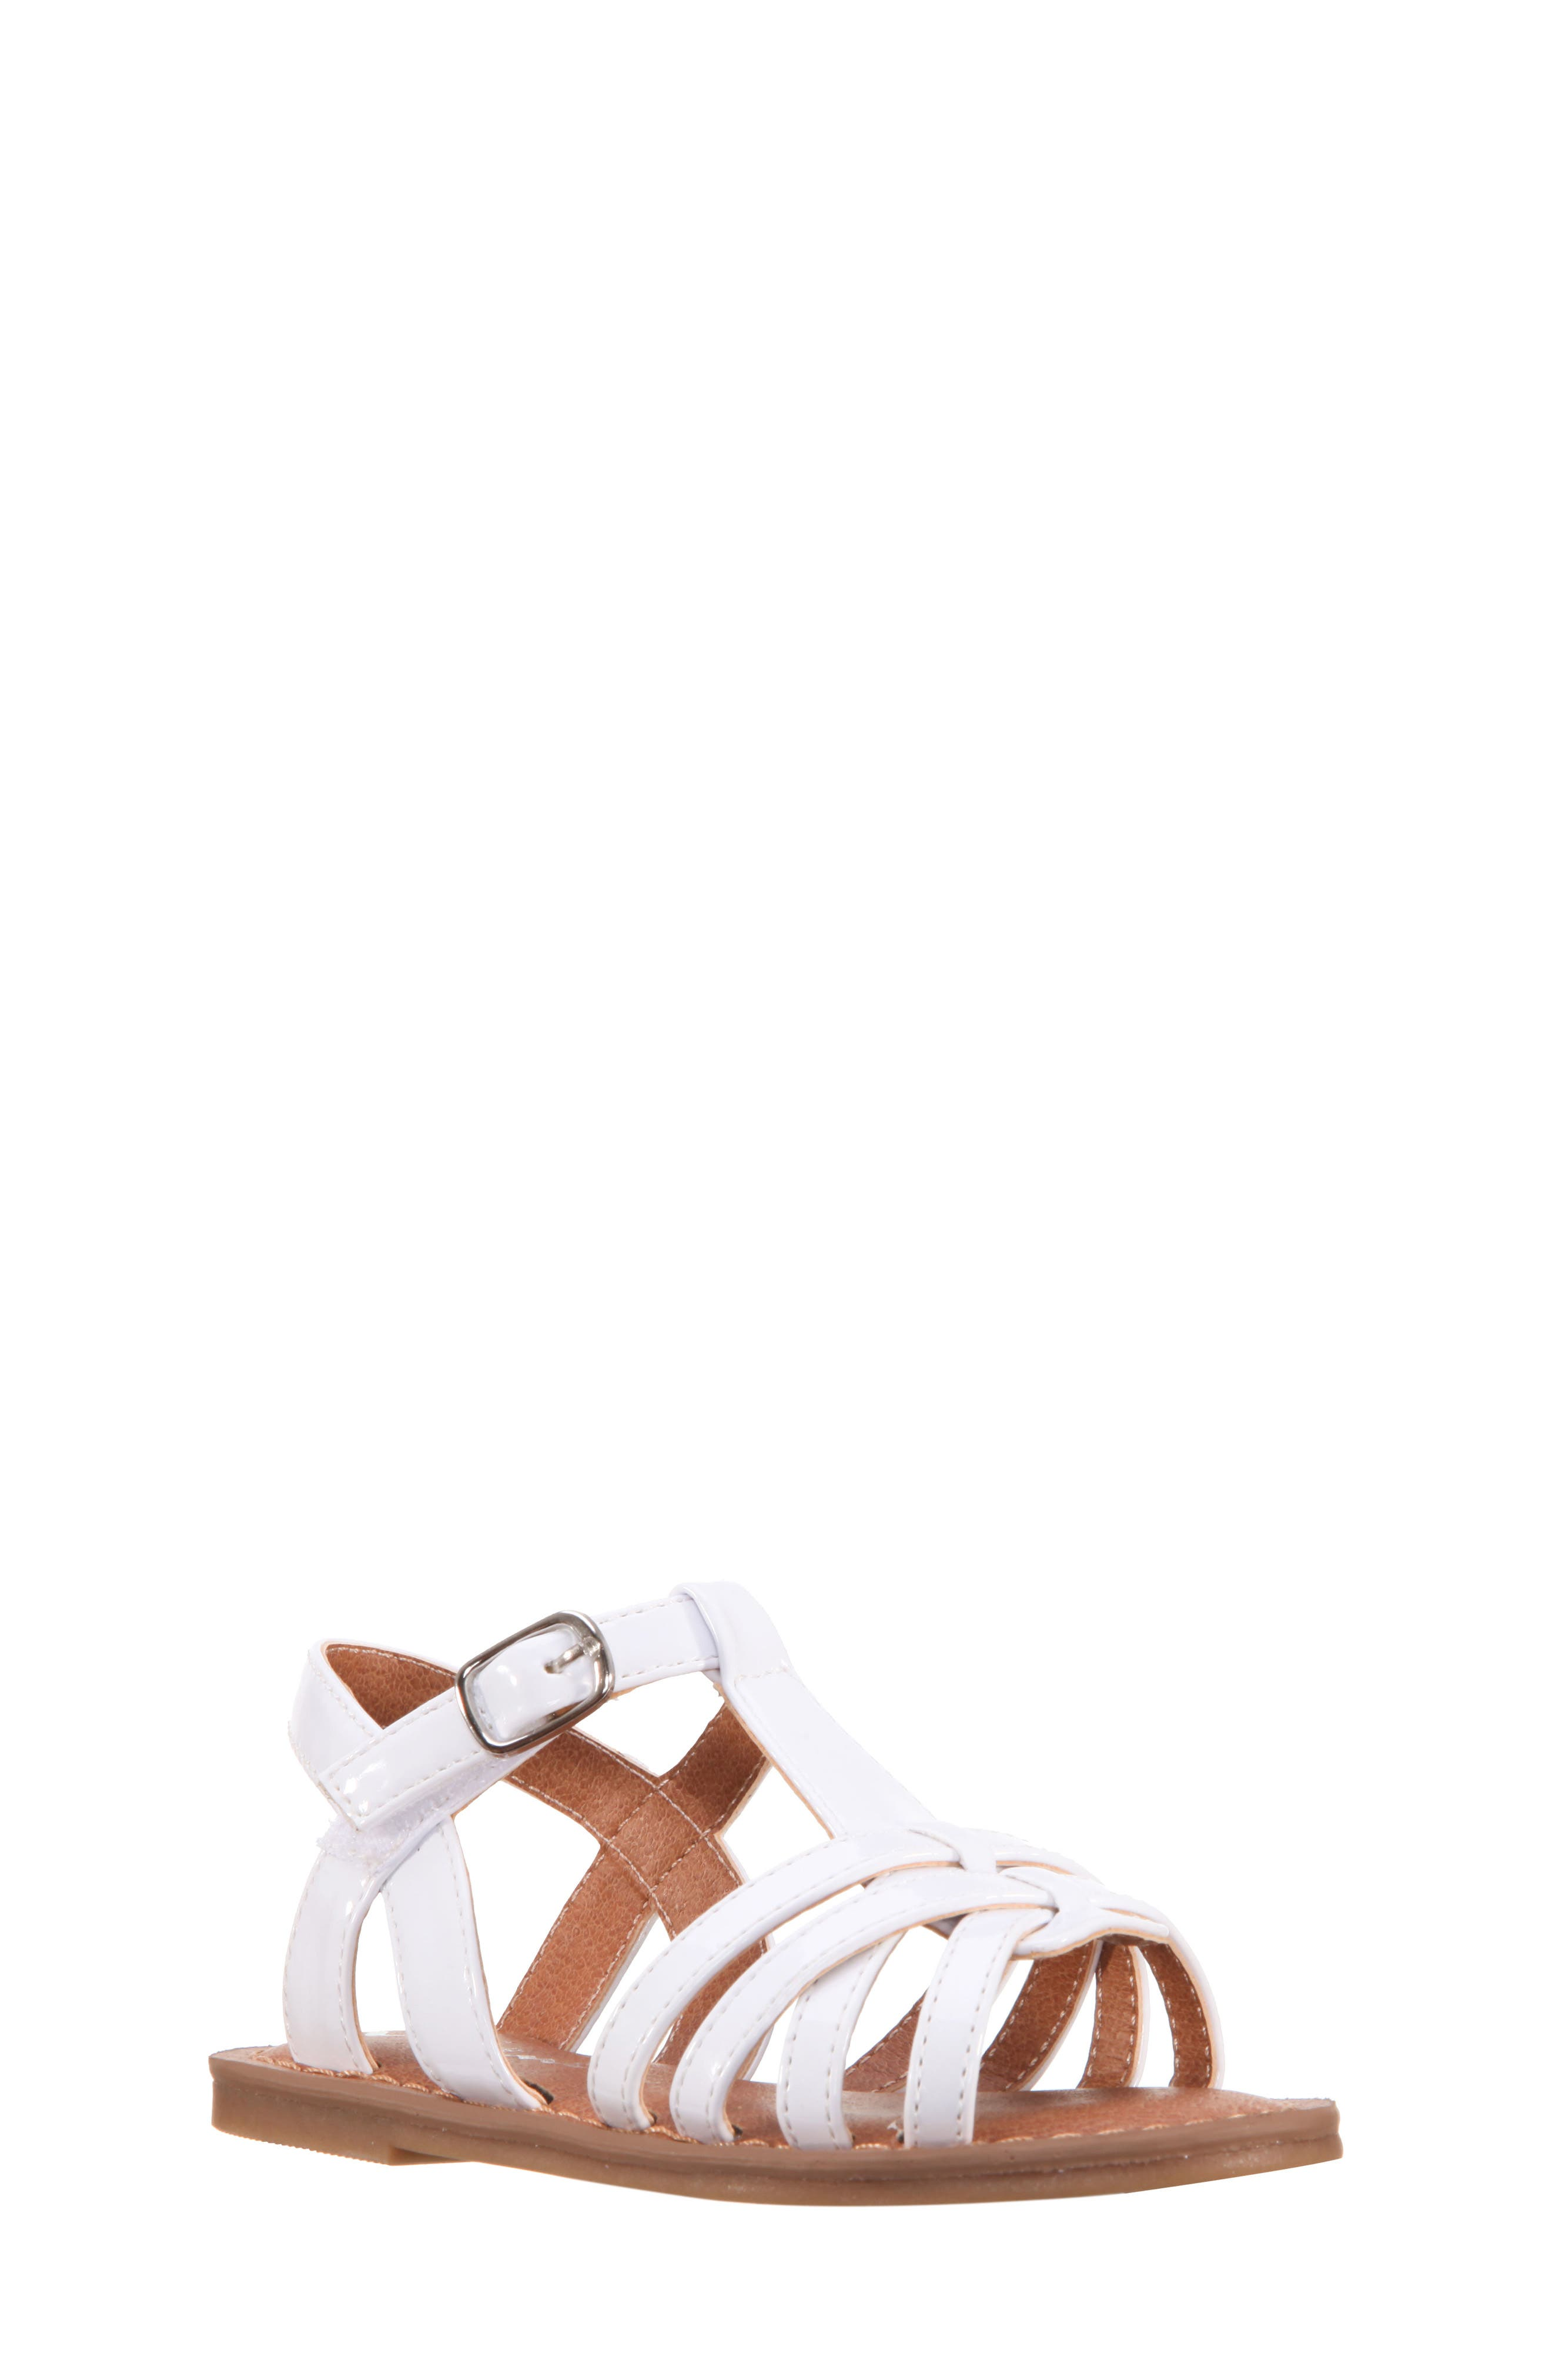 Thereasa Ankle Strap Sandal,                             Main thumbnail 1, color,                             White Patent